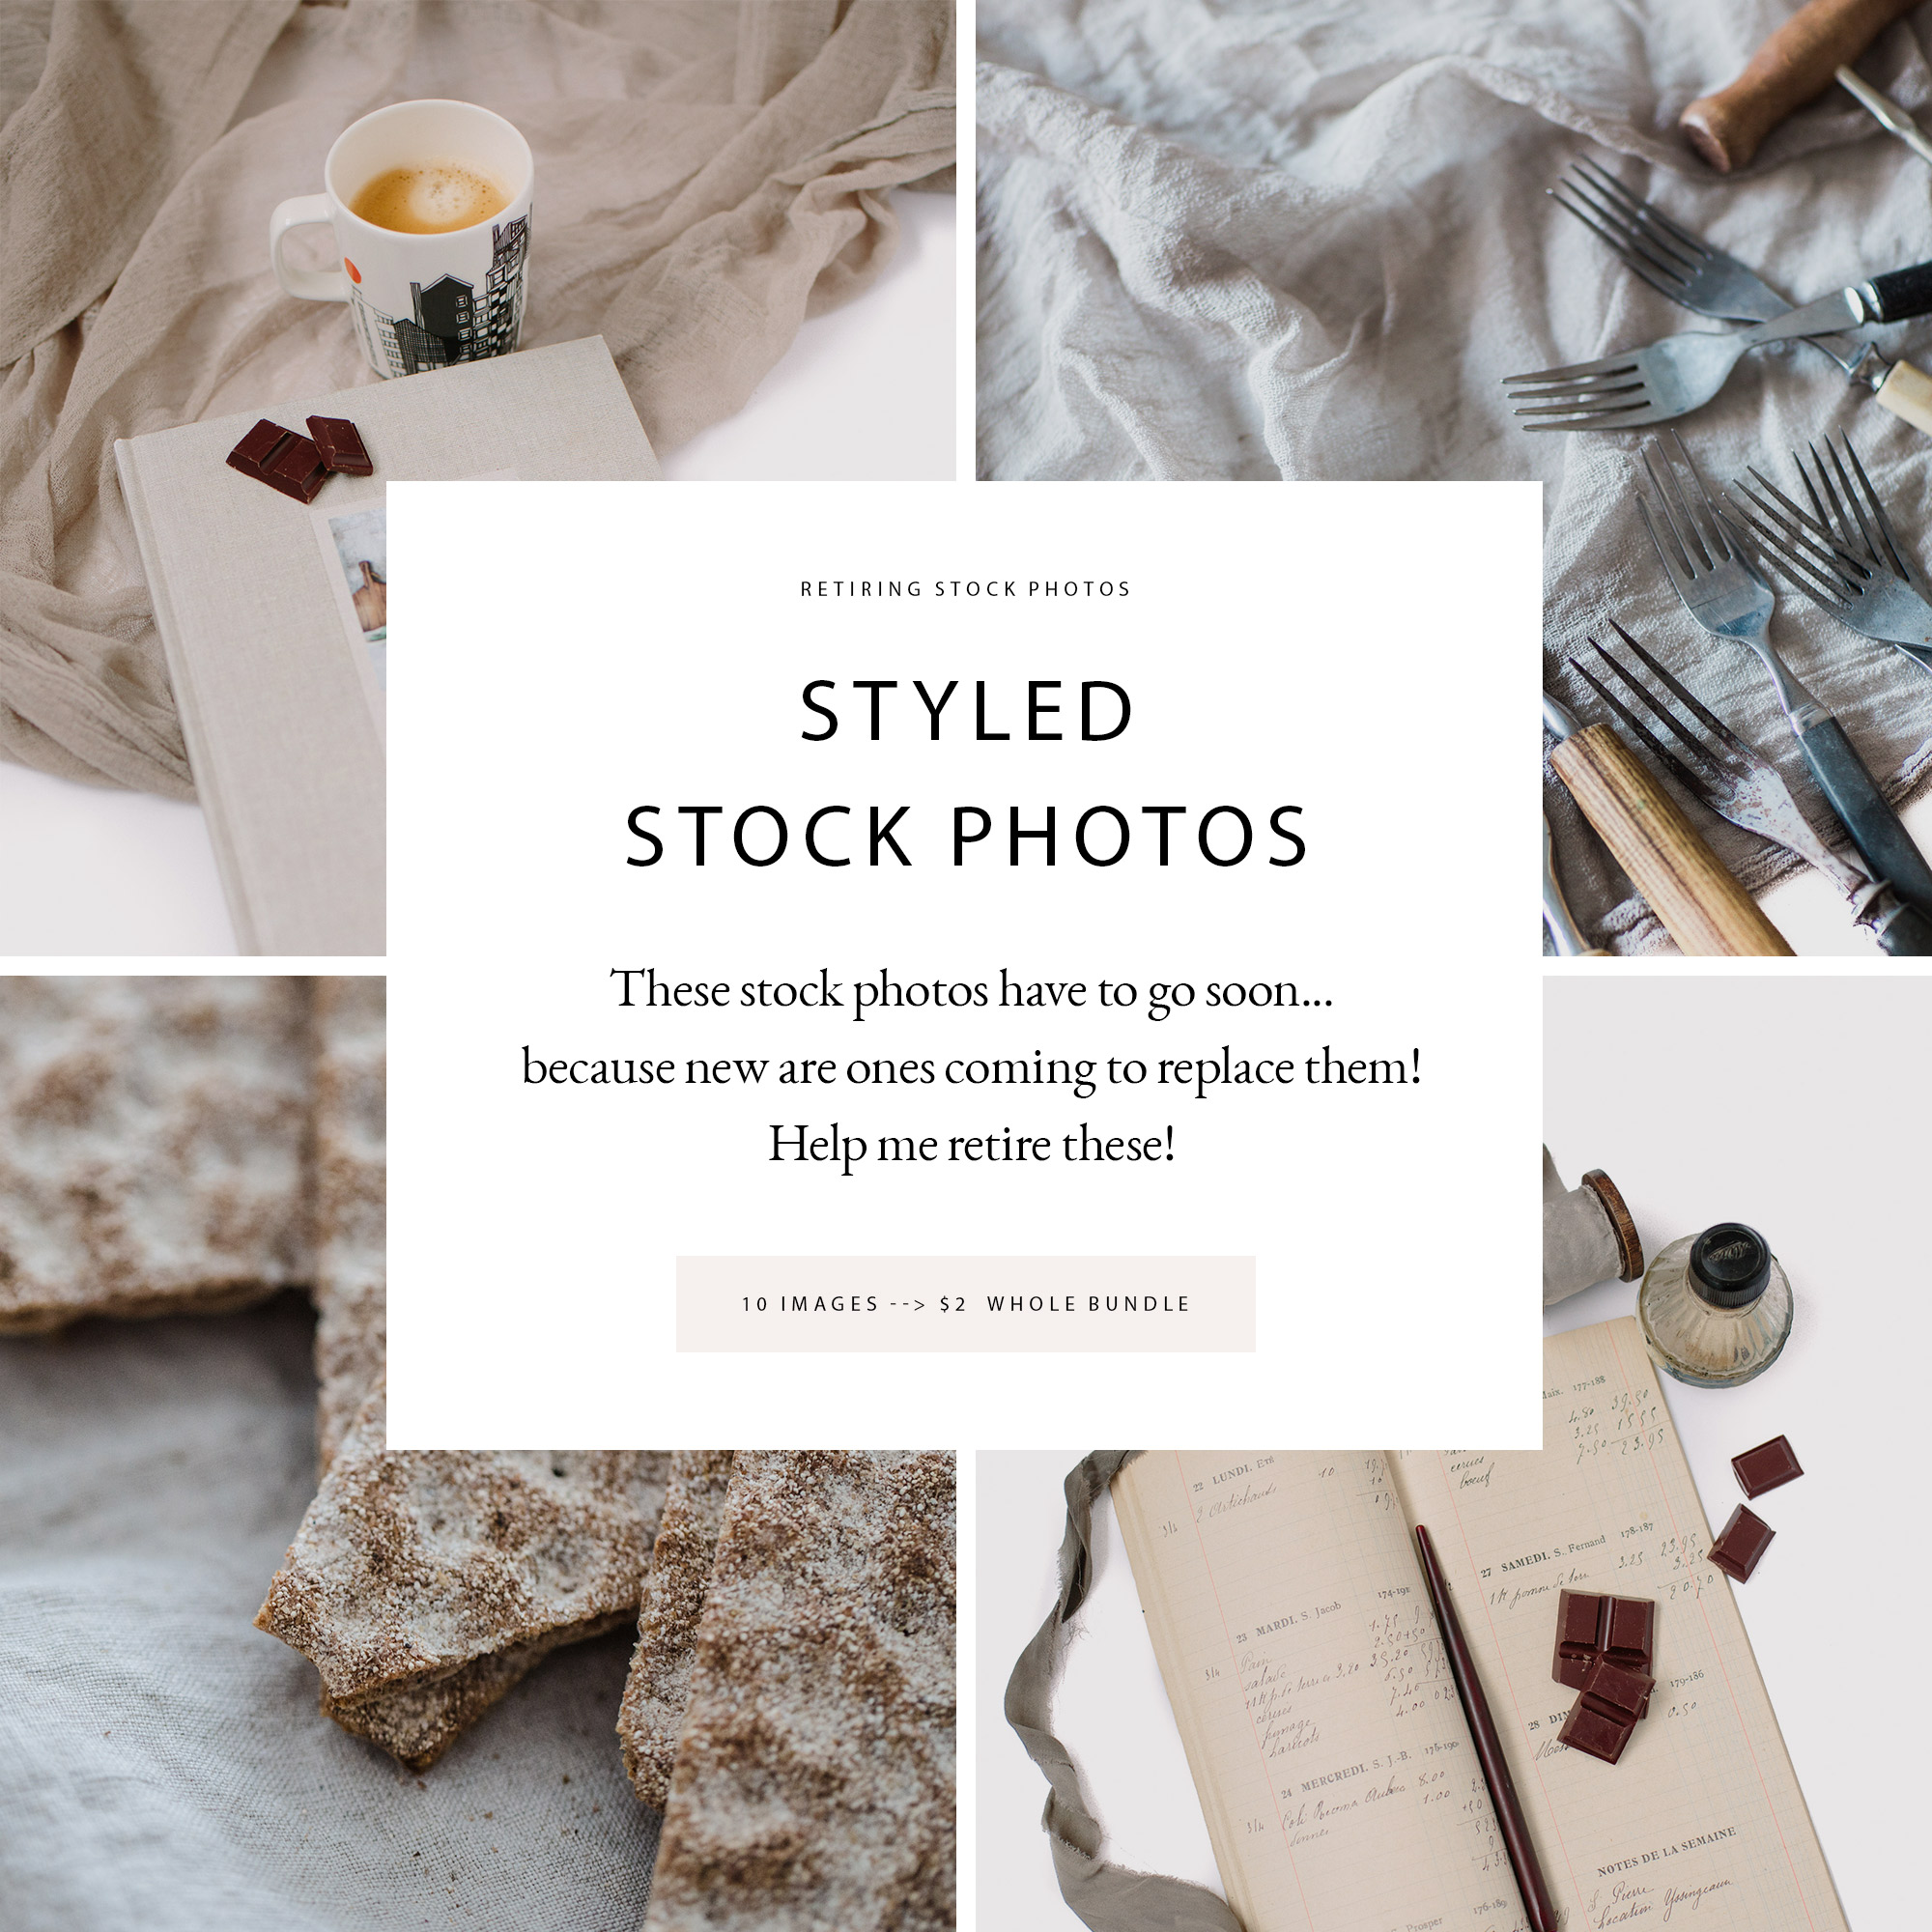 Styled stock photos for bloggers and creatives who want to have a coherent brand and social media. Check out more from www.nellaino.com. There's also free stock photos if you sign up for the newsletter!